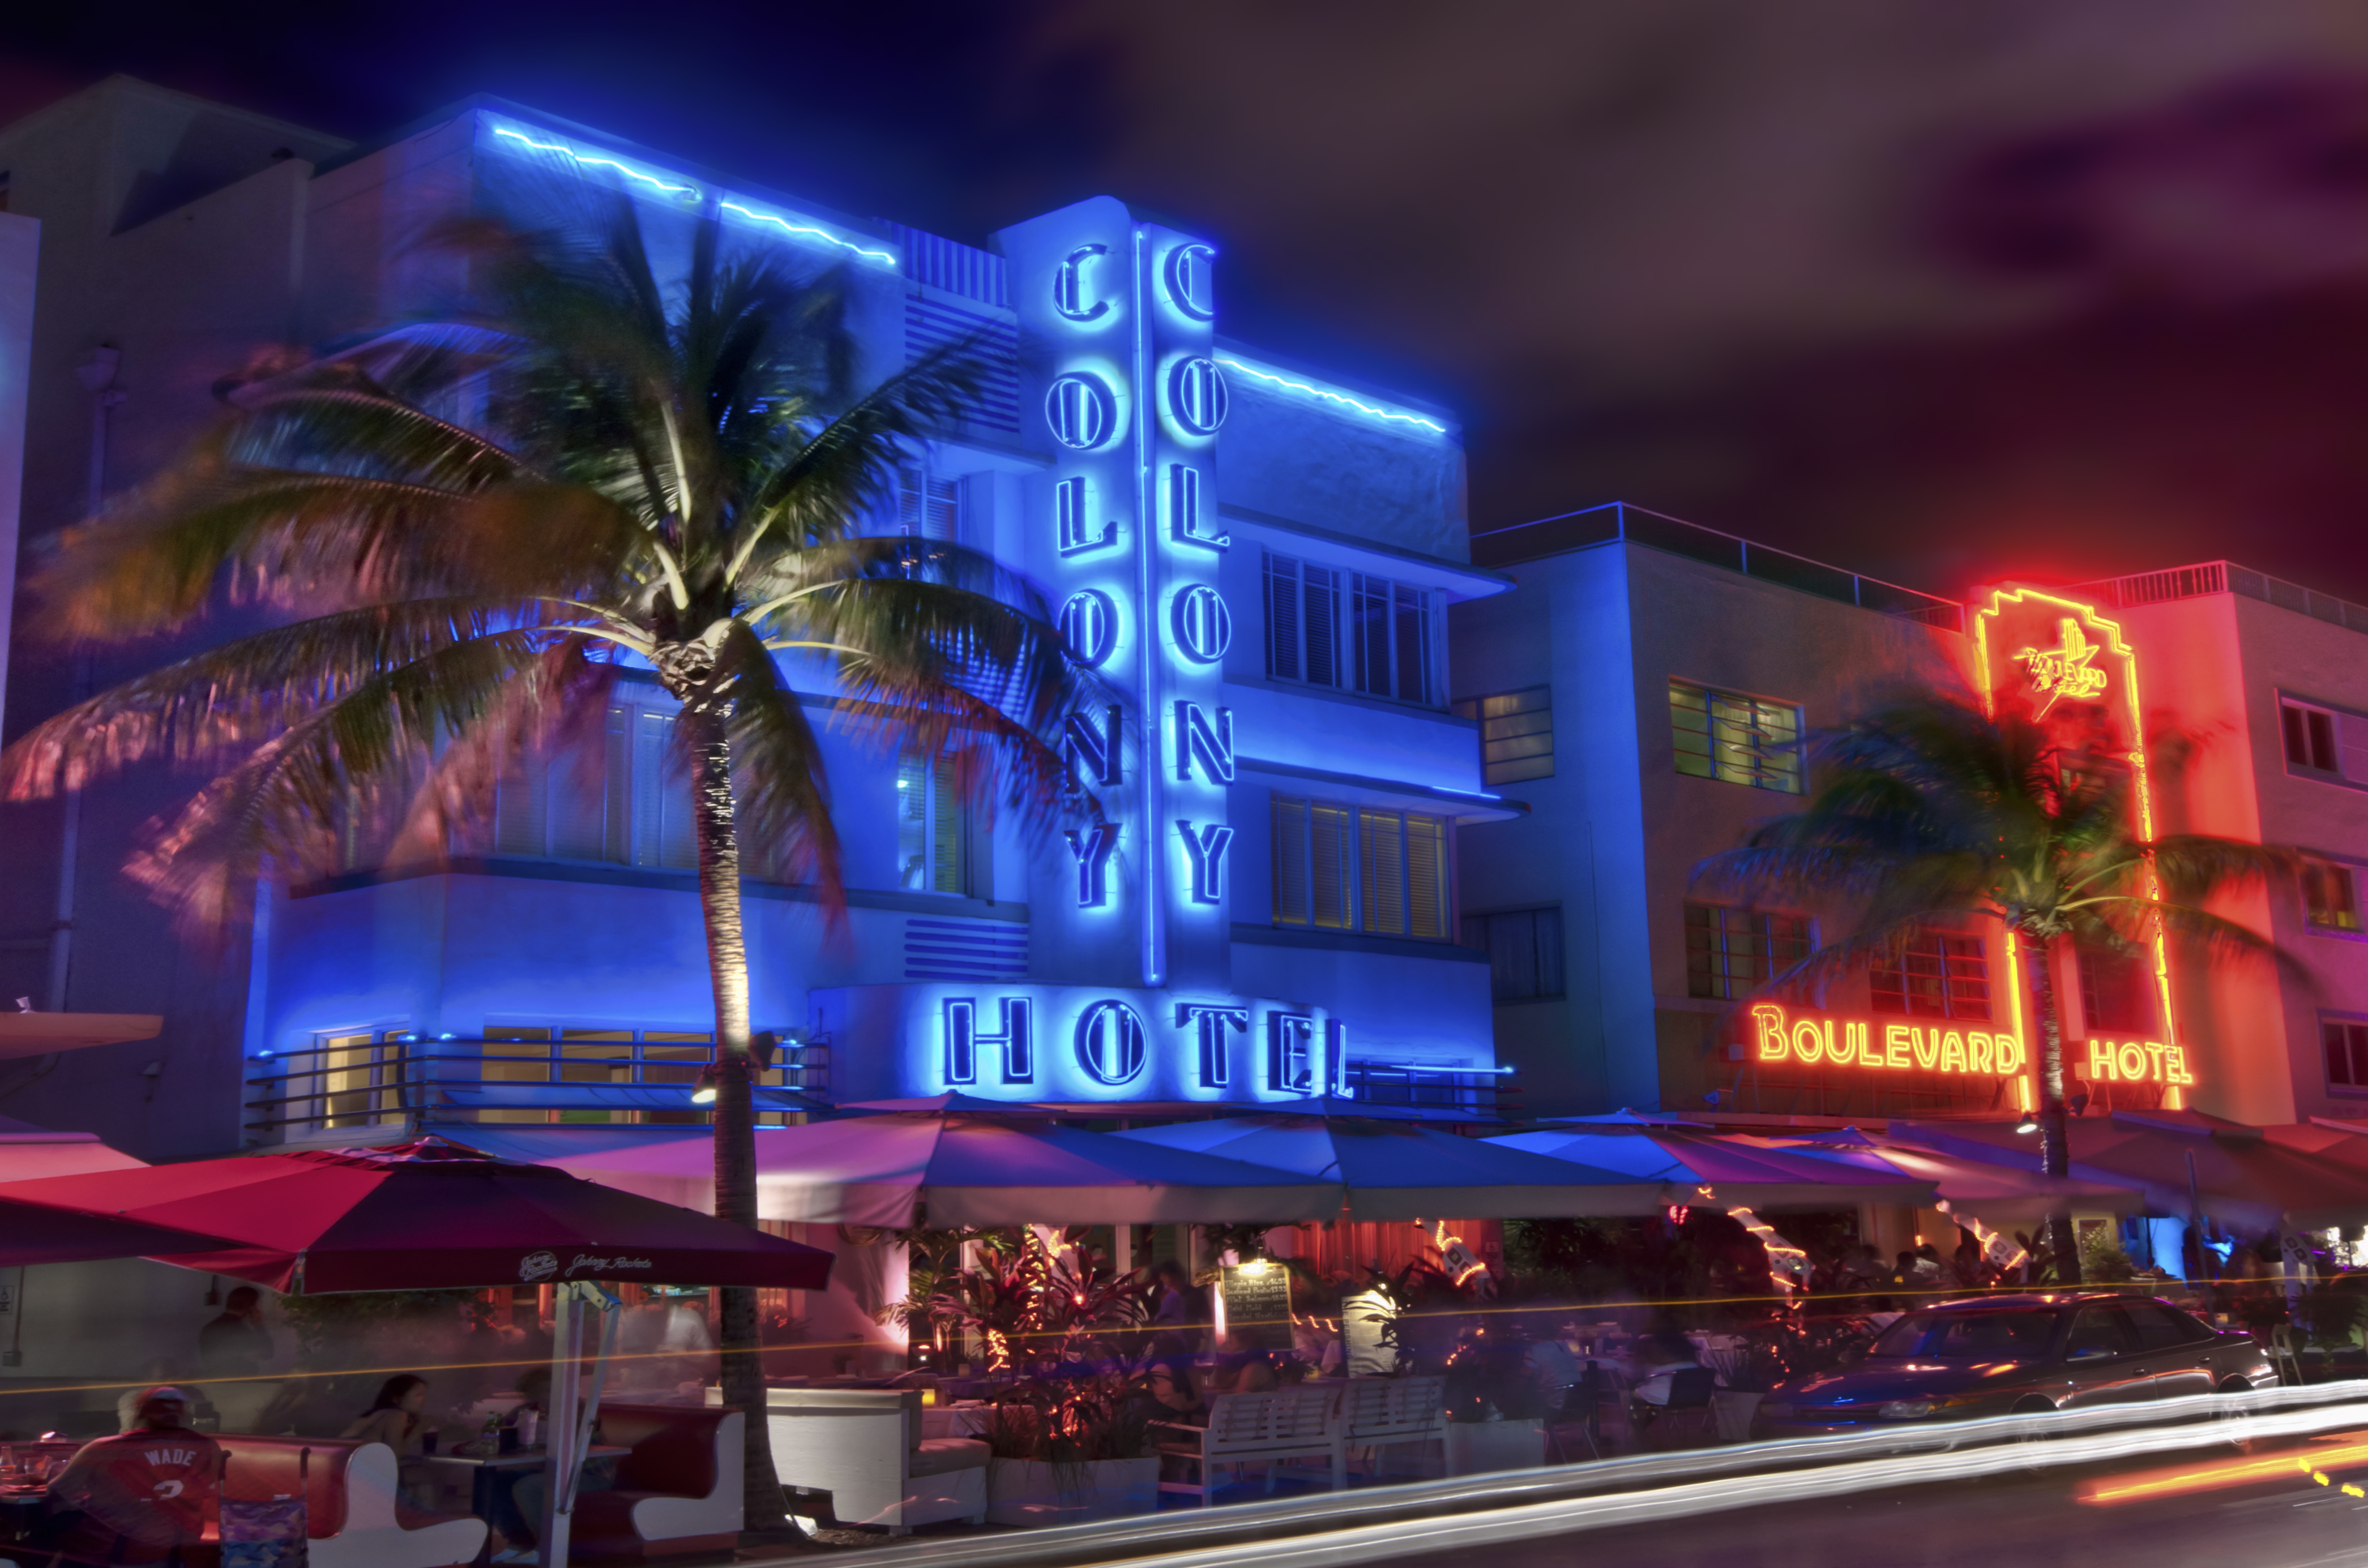 Elevation of miami beach fl usa maplogs for Bloody bay wall mural